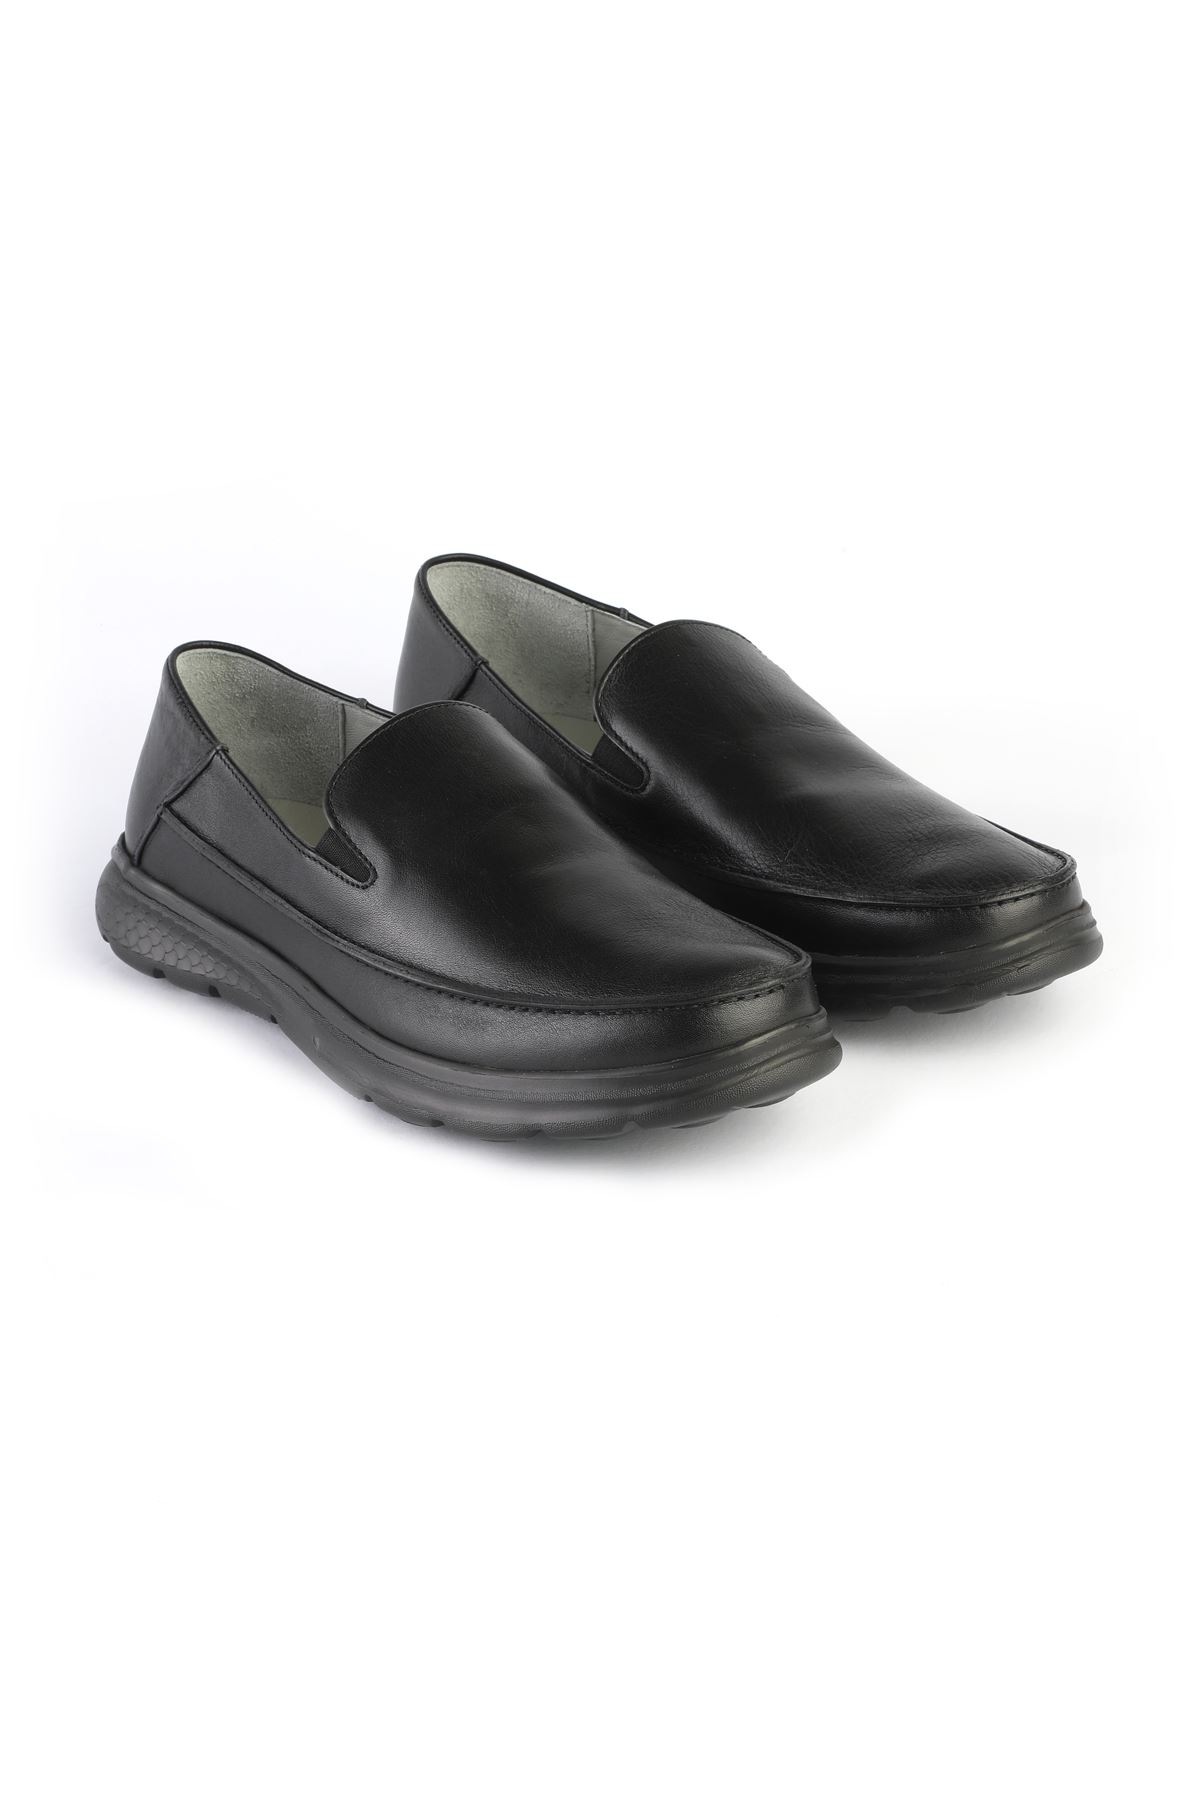 Libero 3223 Black Loafer Shoes